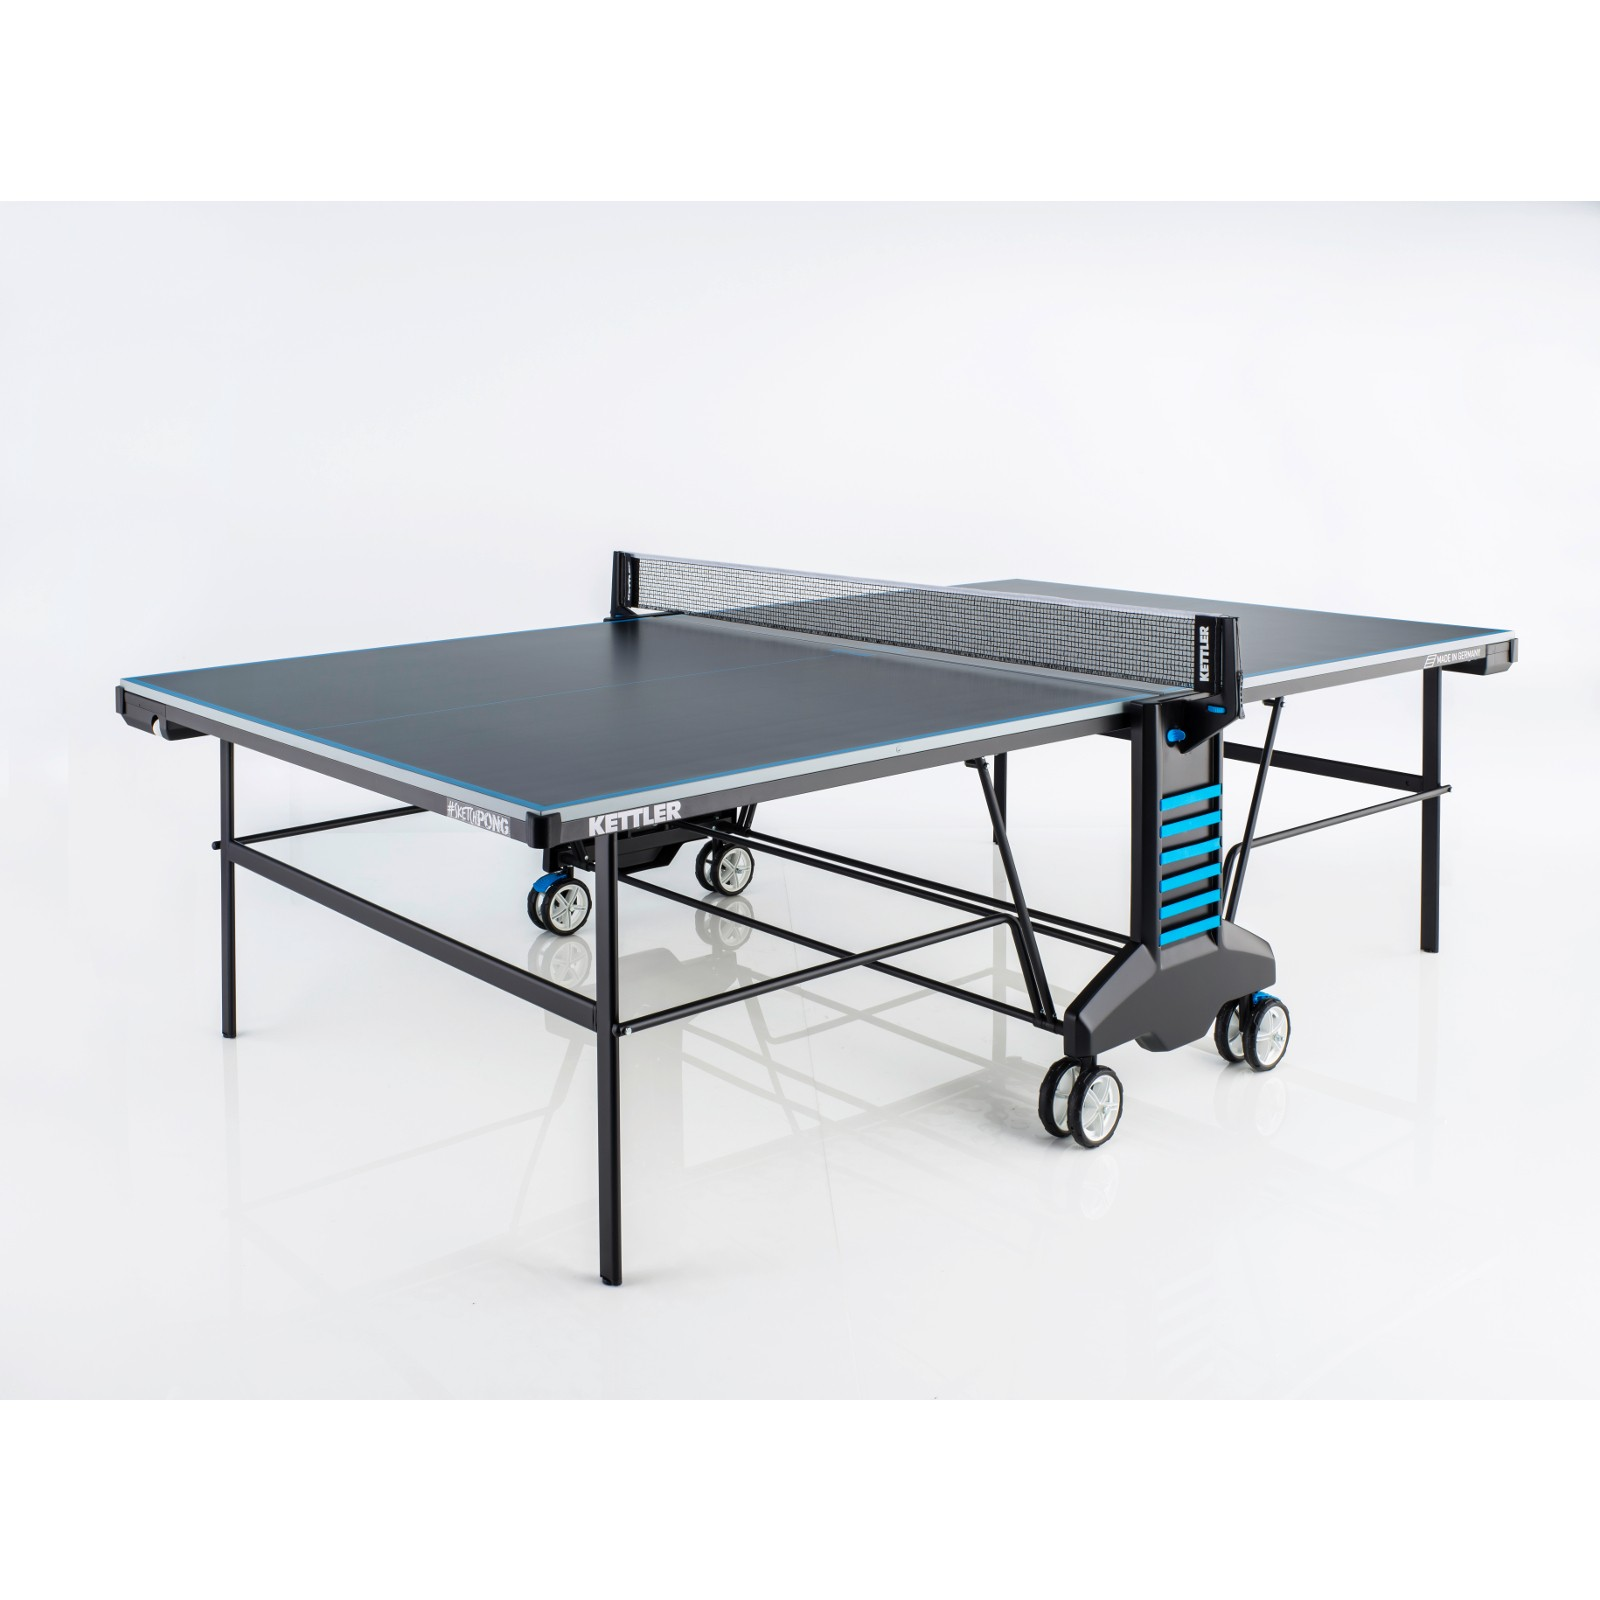 Kettler outdoor table tennis table sketch pong buy with for Table kettler